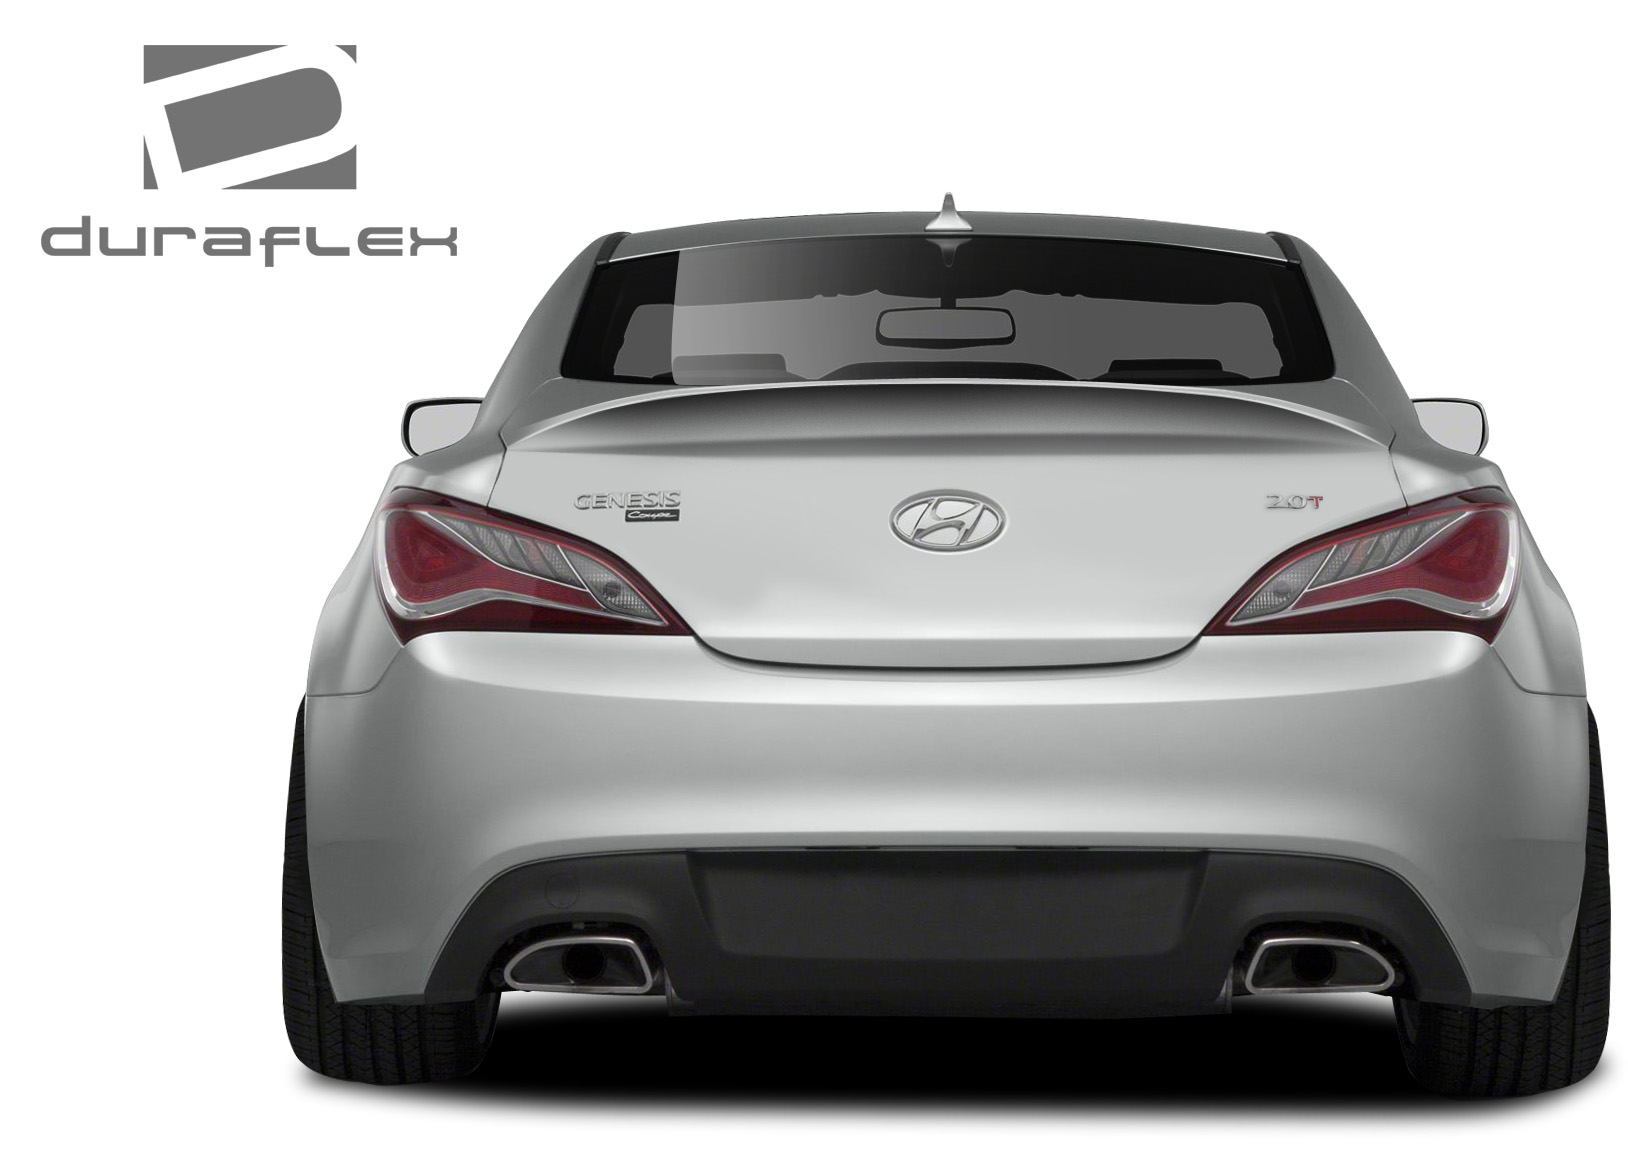 coupe profile concepts headlight by products ha genesis hyundai kits halo prism led formerly colormorph